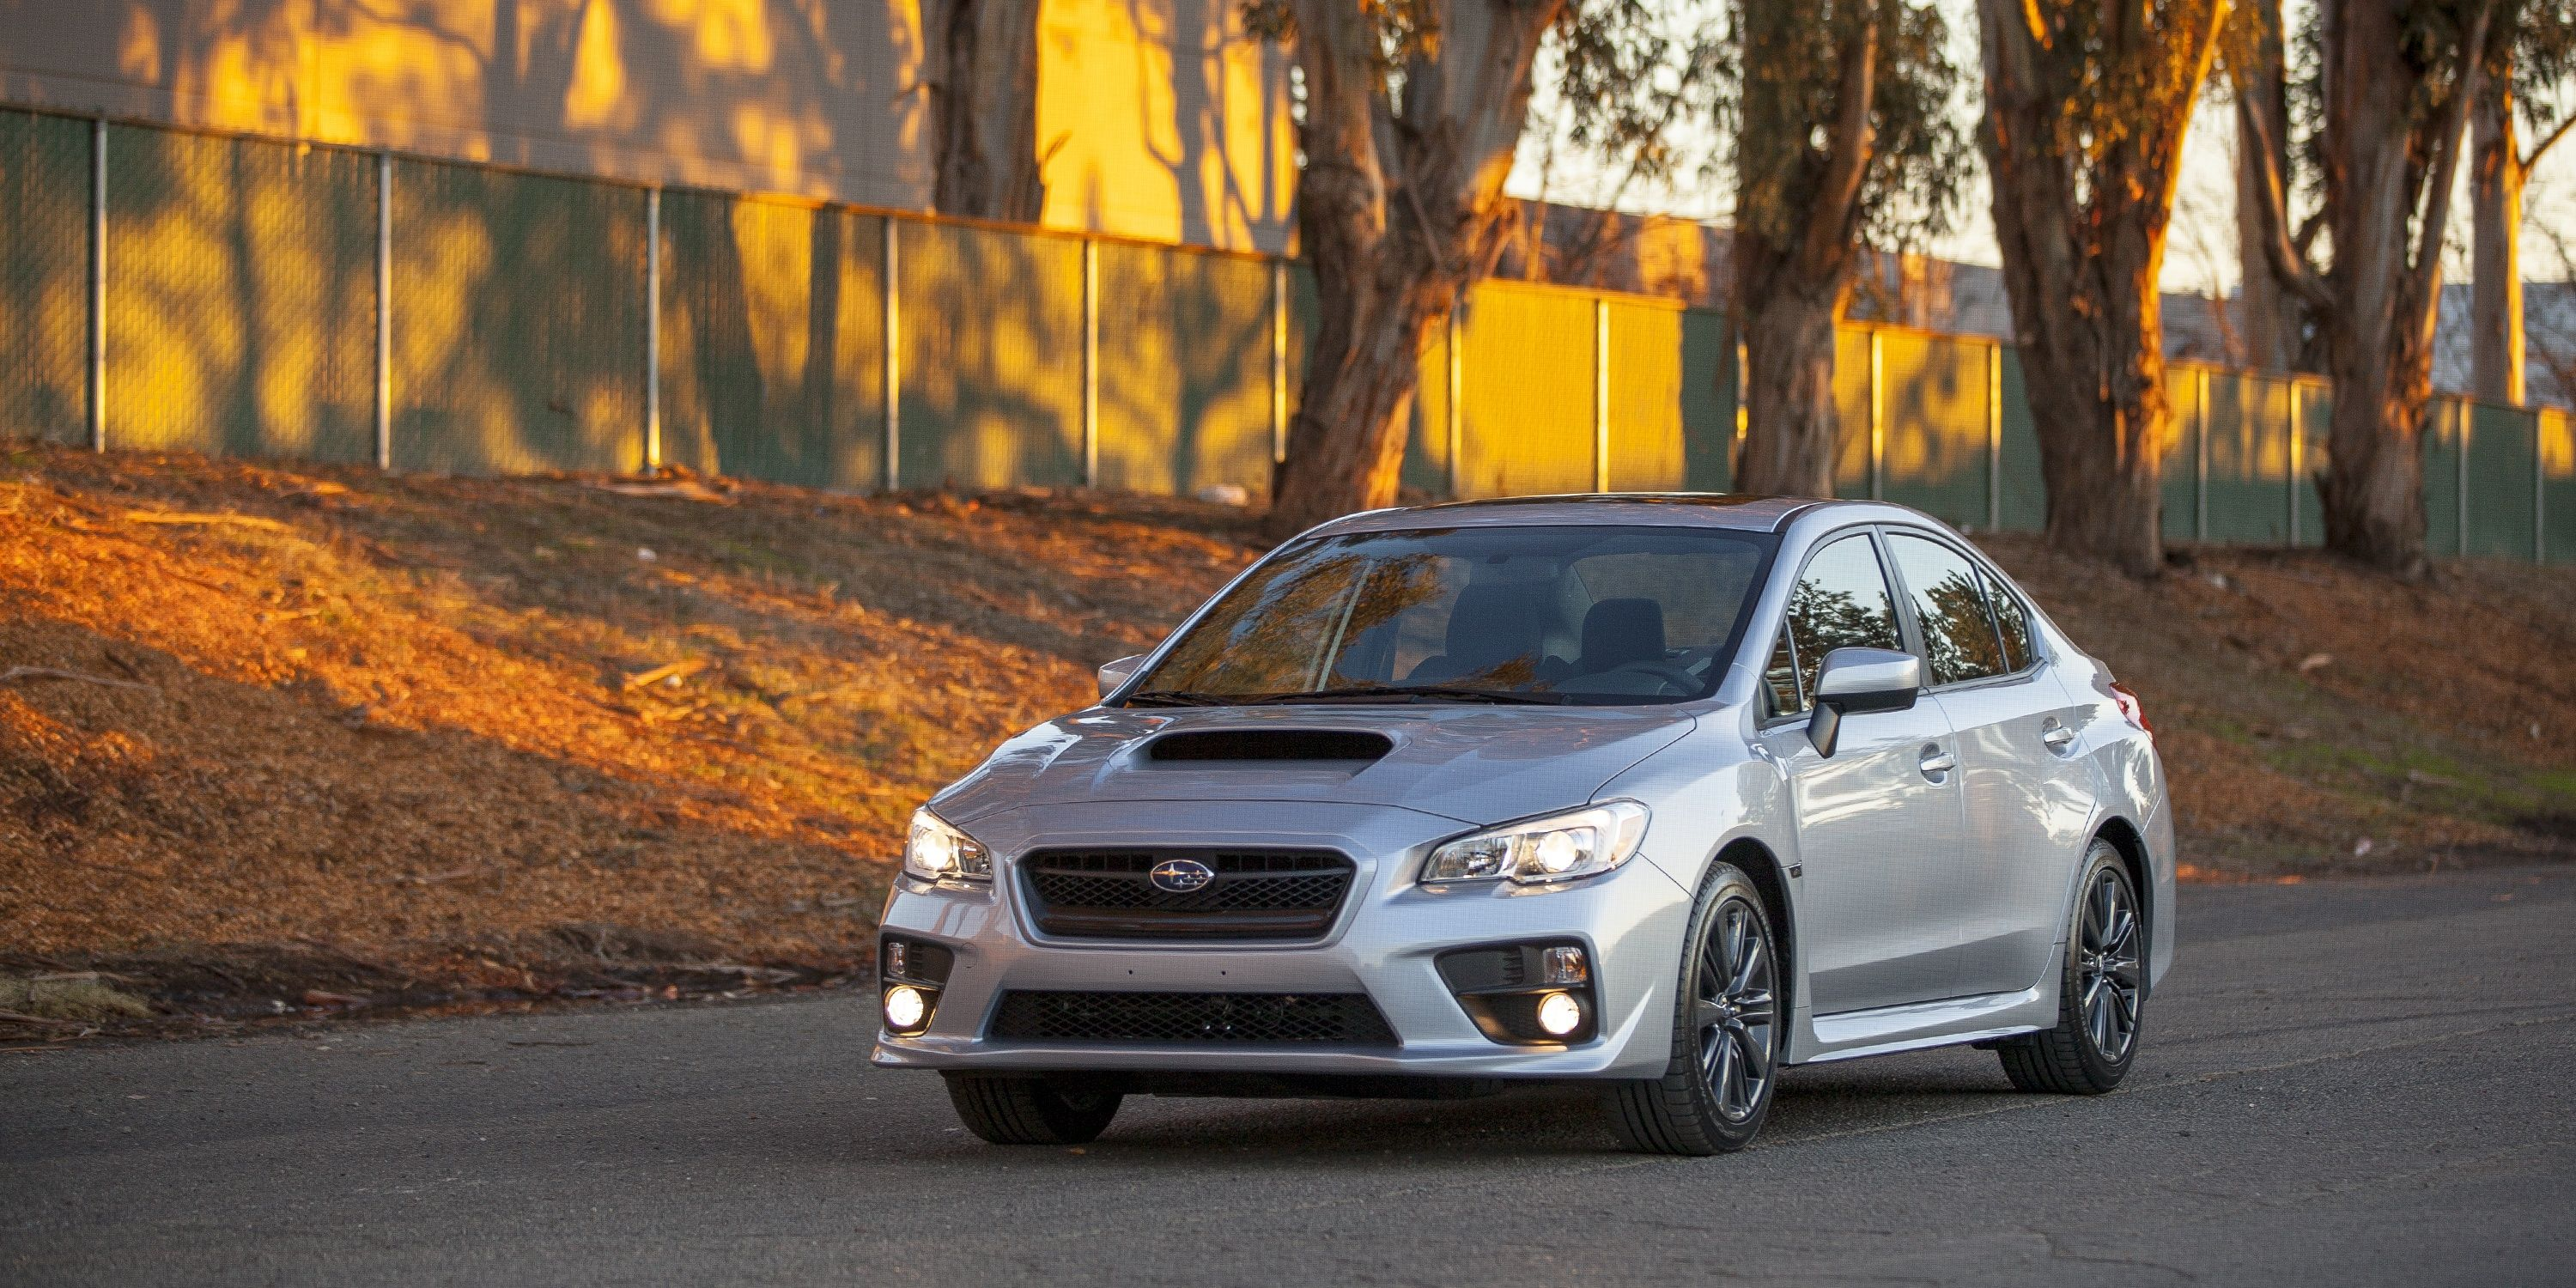 You Can Buy These 10 Sporty Daily Drivers For Under $20,000